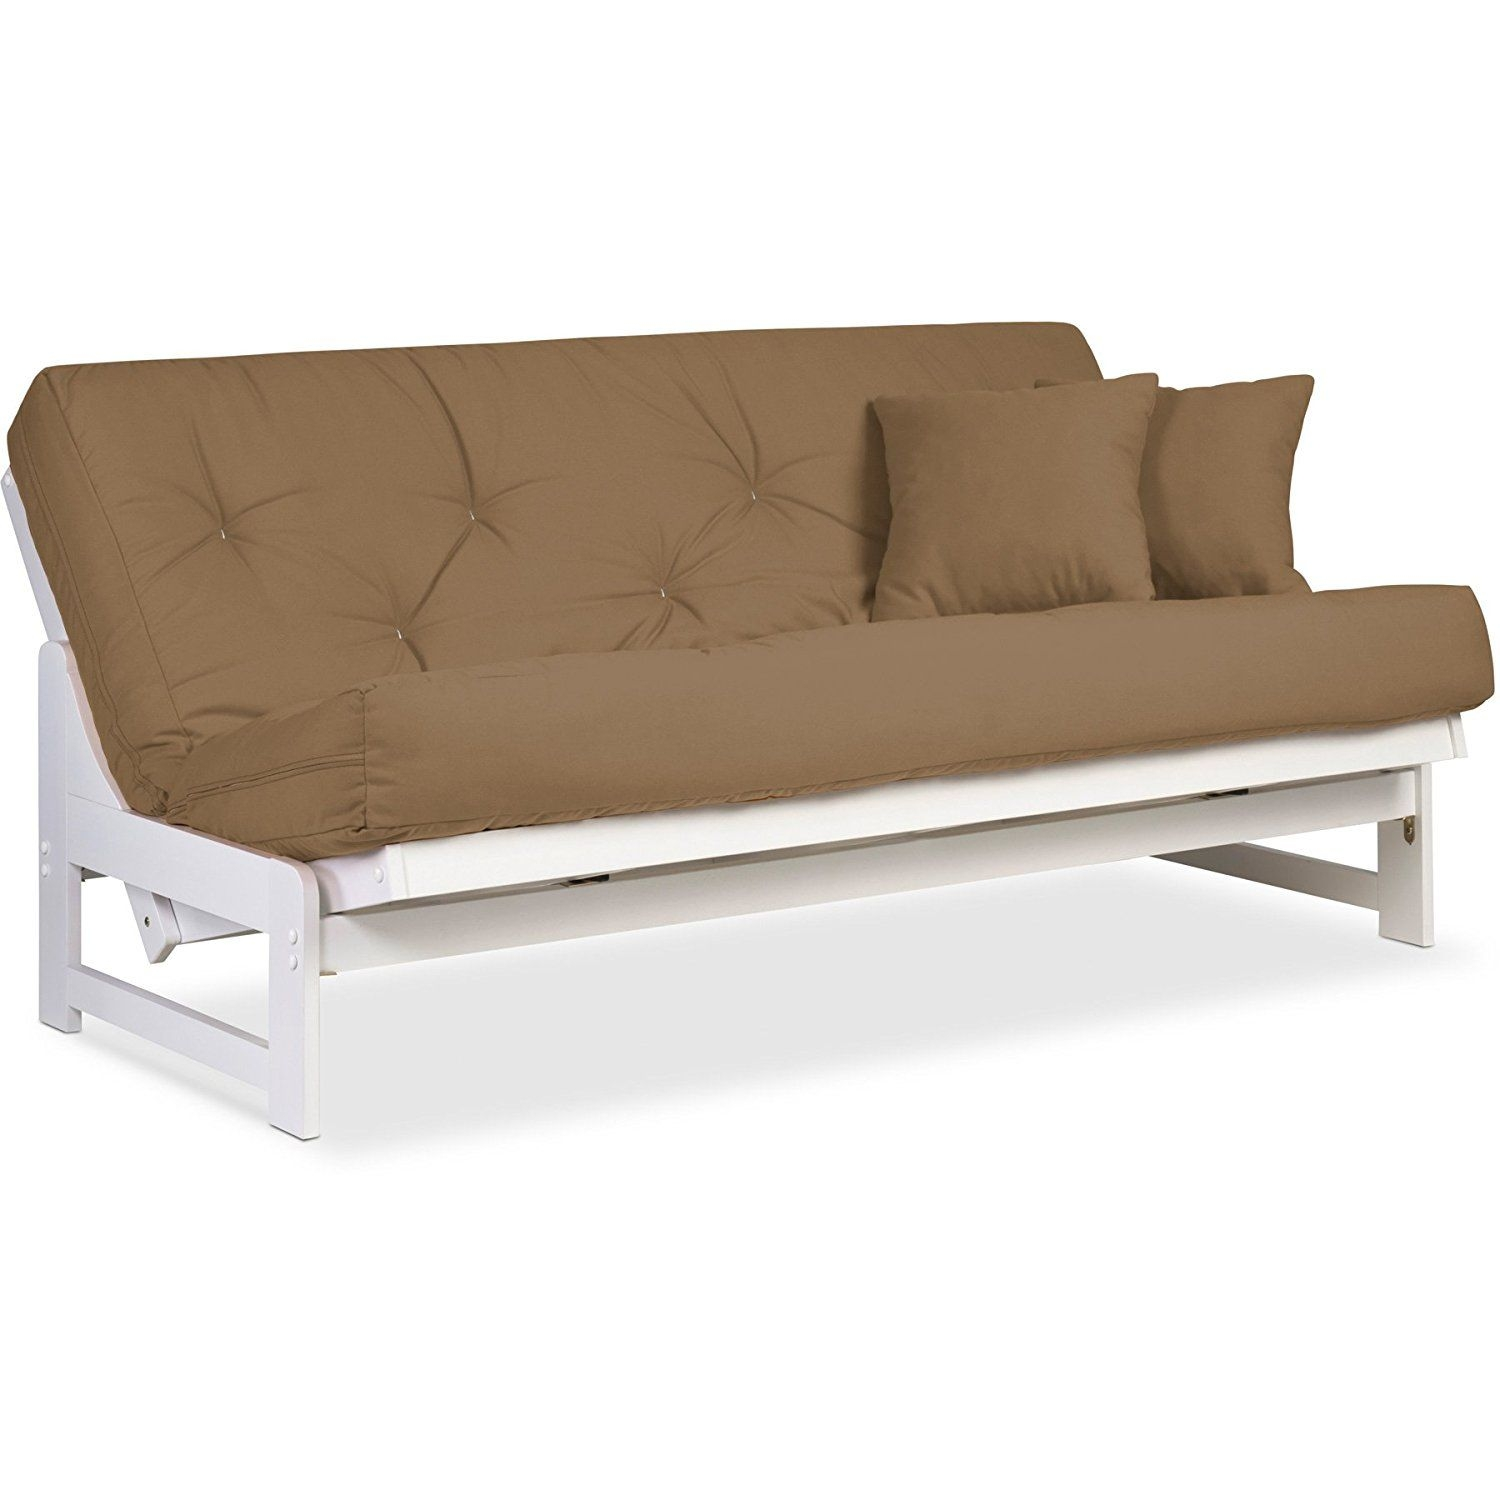 Arden White Futon Set Full Or Queen Size   Armless Wood Futon Frame With  Mattress Included